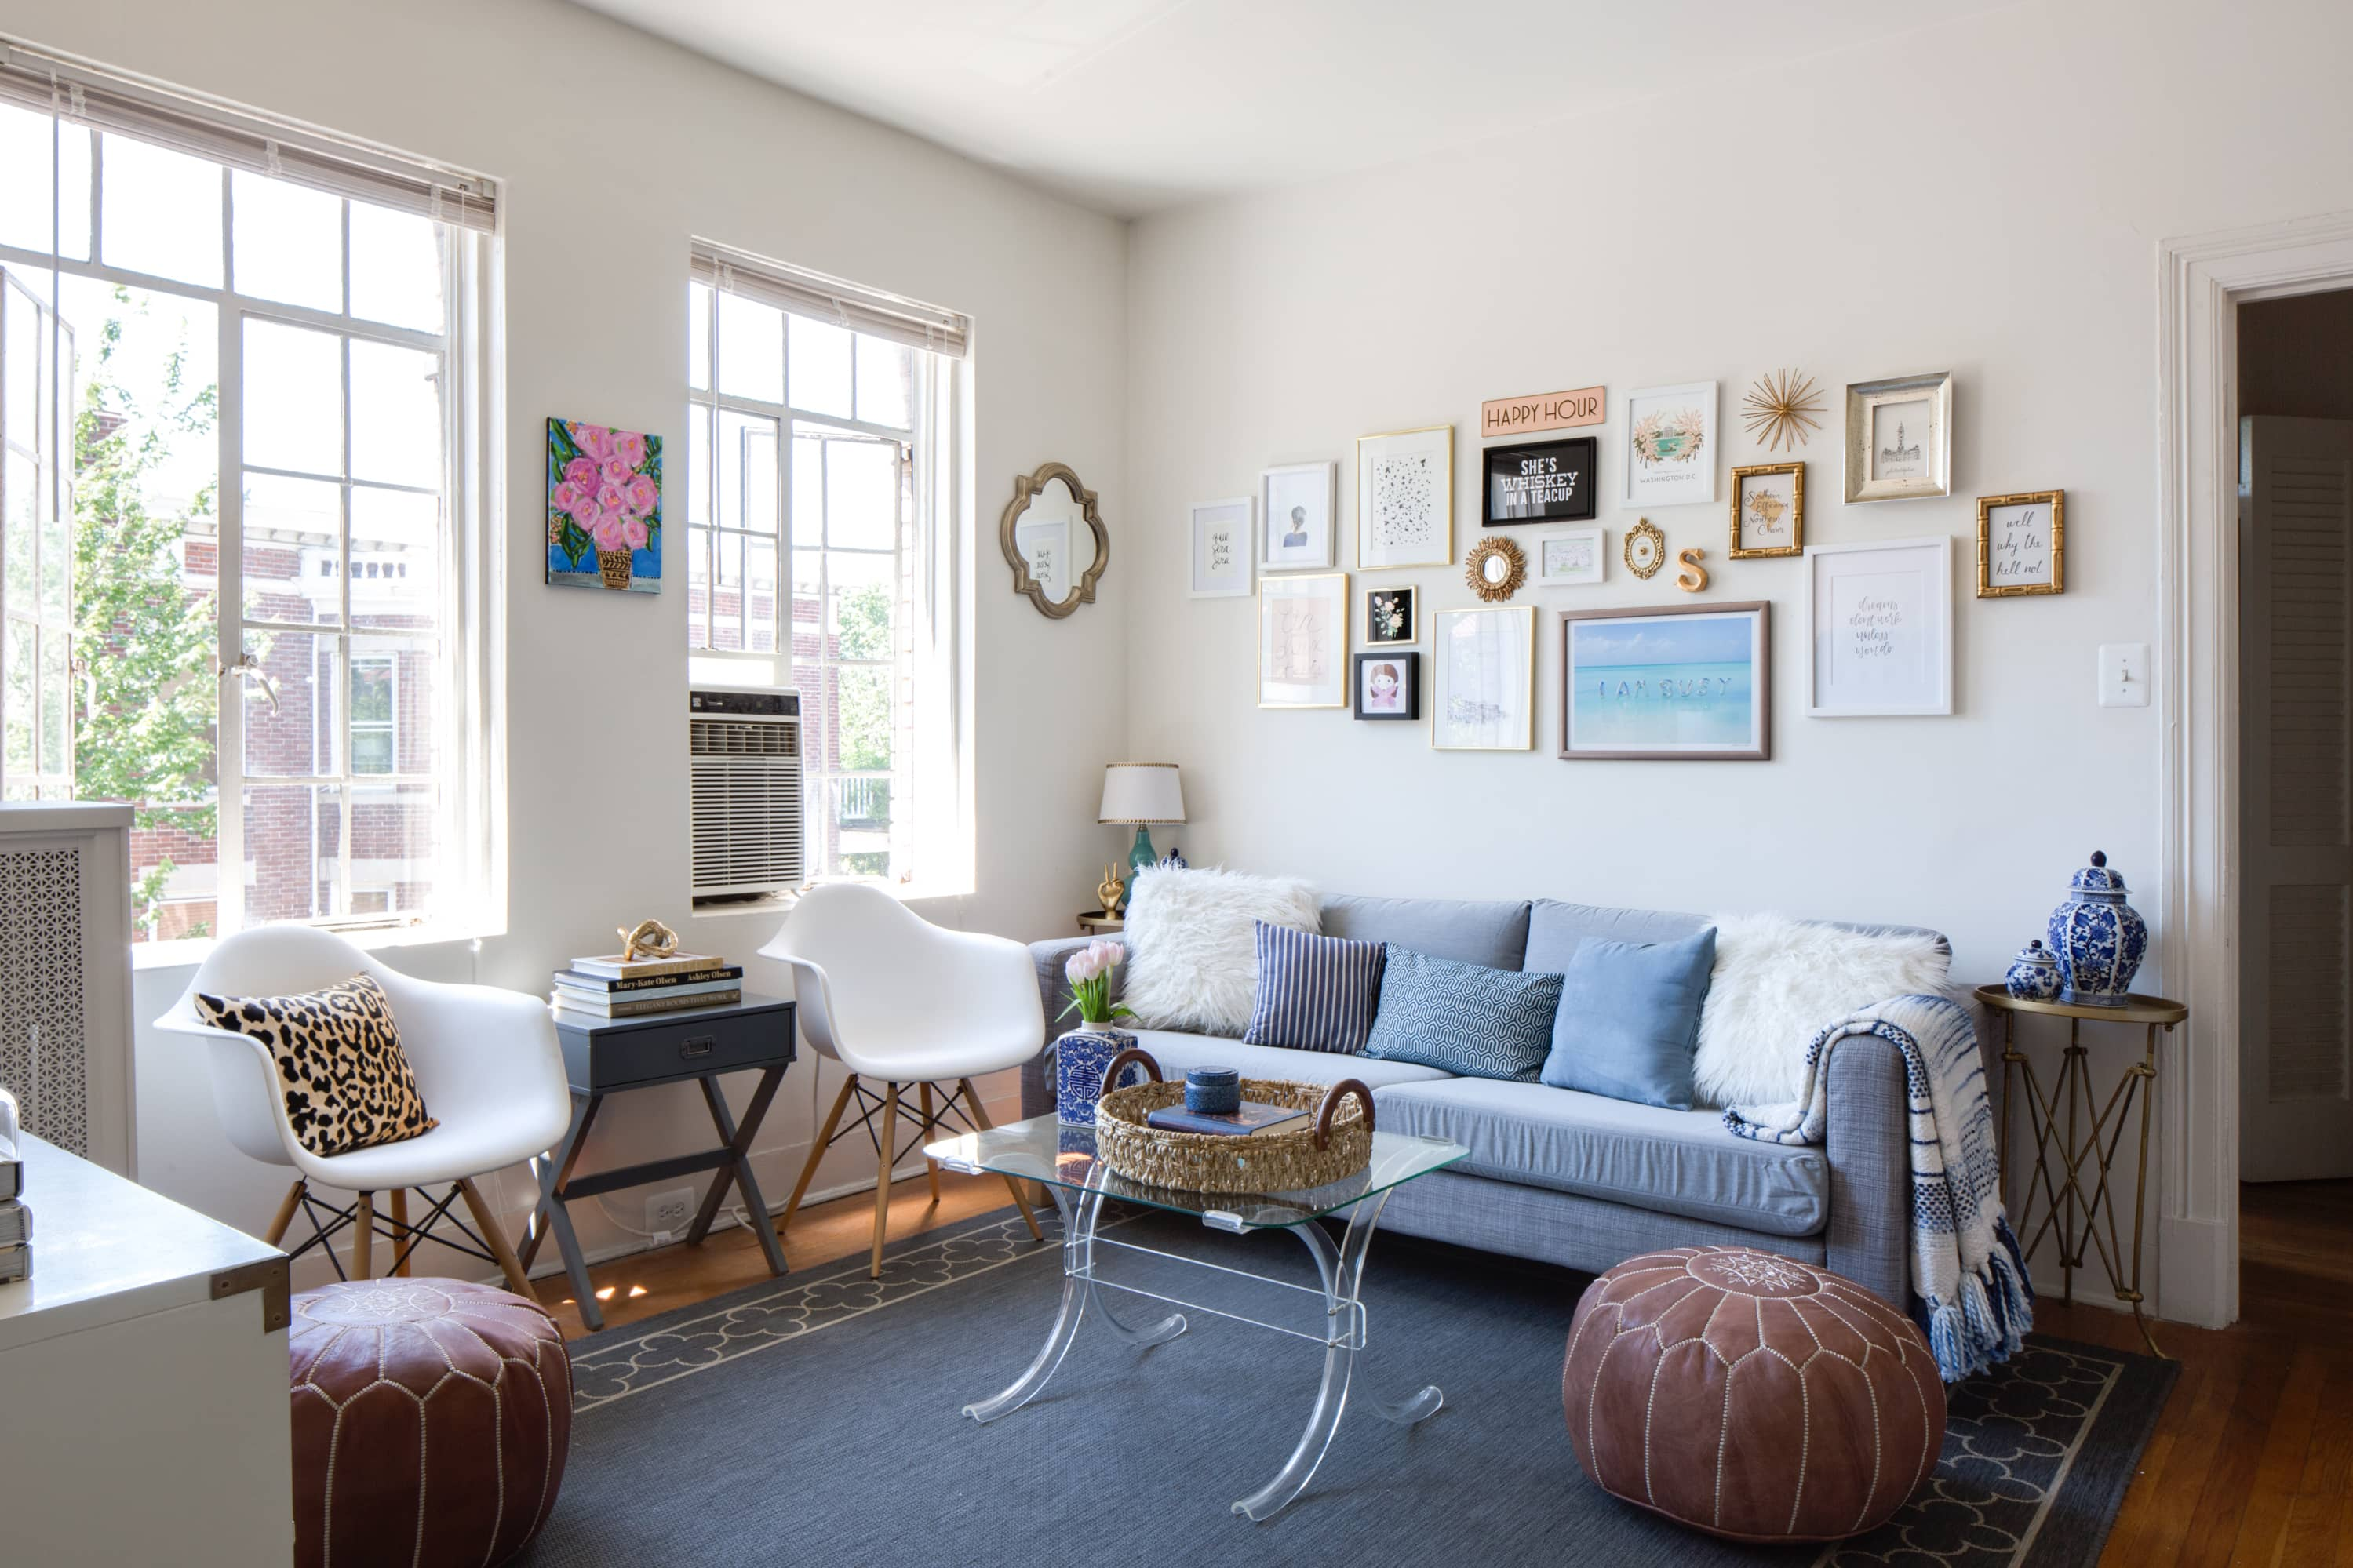 Tour a Classic DC Home Filled with Chic Craigslist Finds